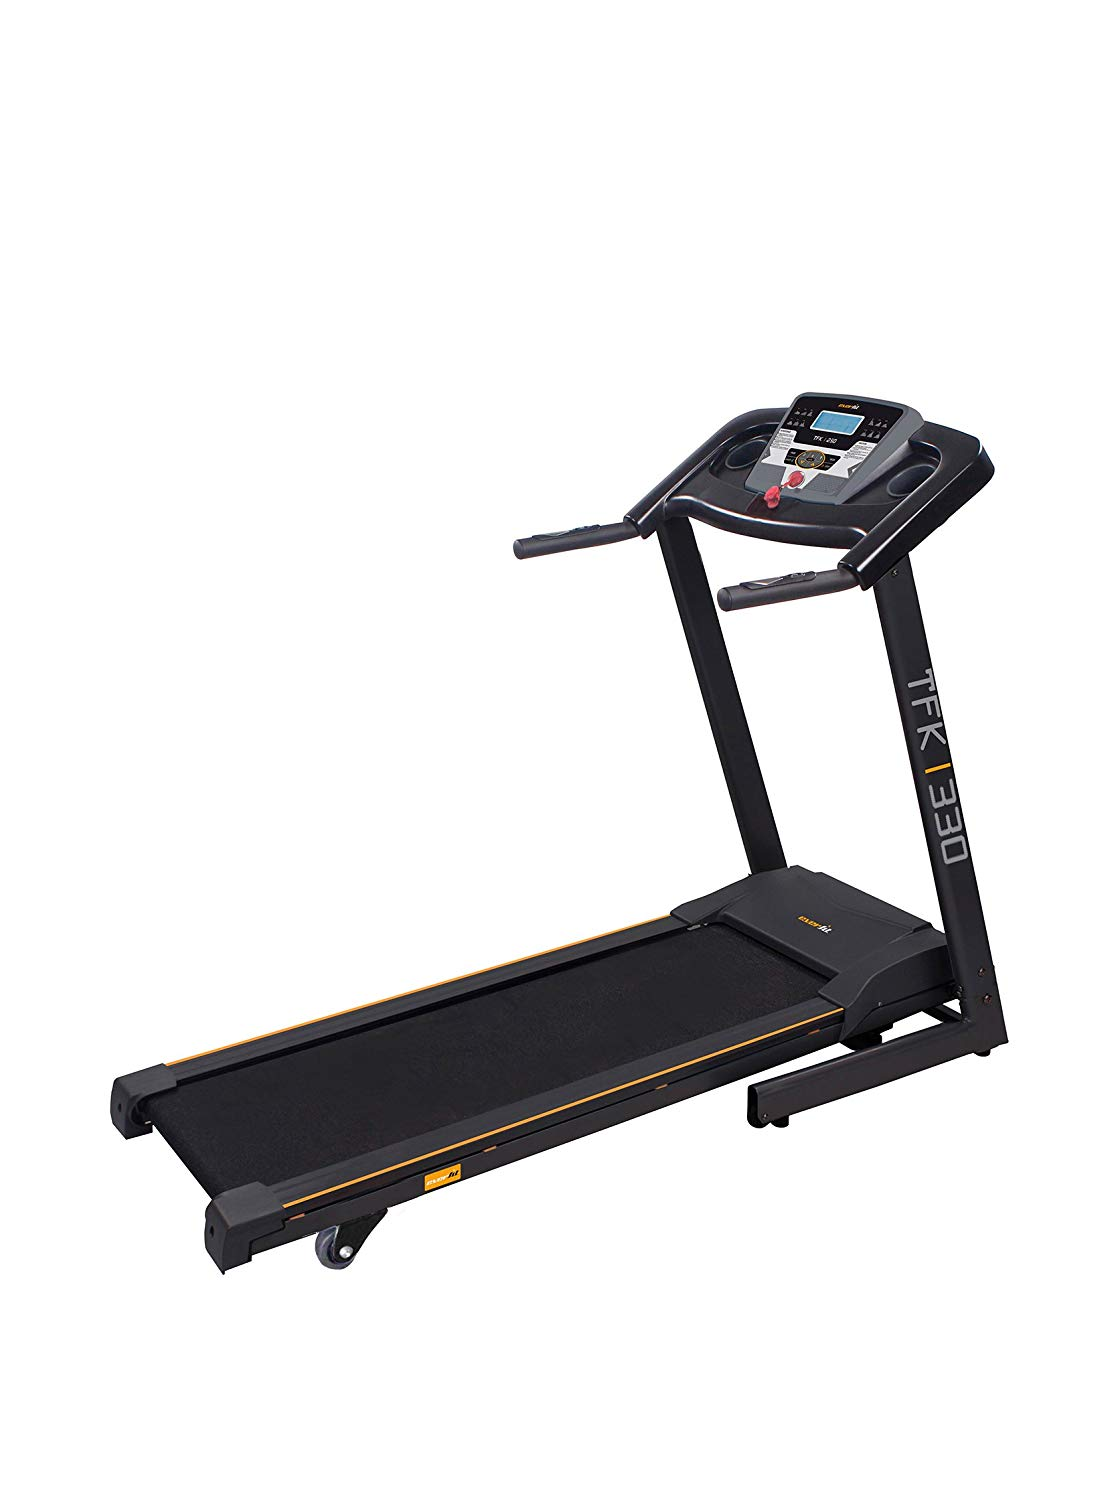 Everfit Tapis Roulant Tfk-330 Inclinazione Elettronica Antracite Unica